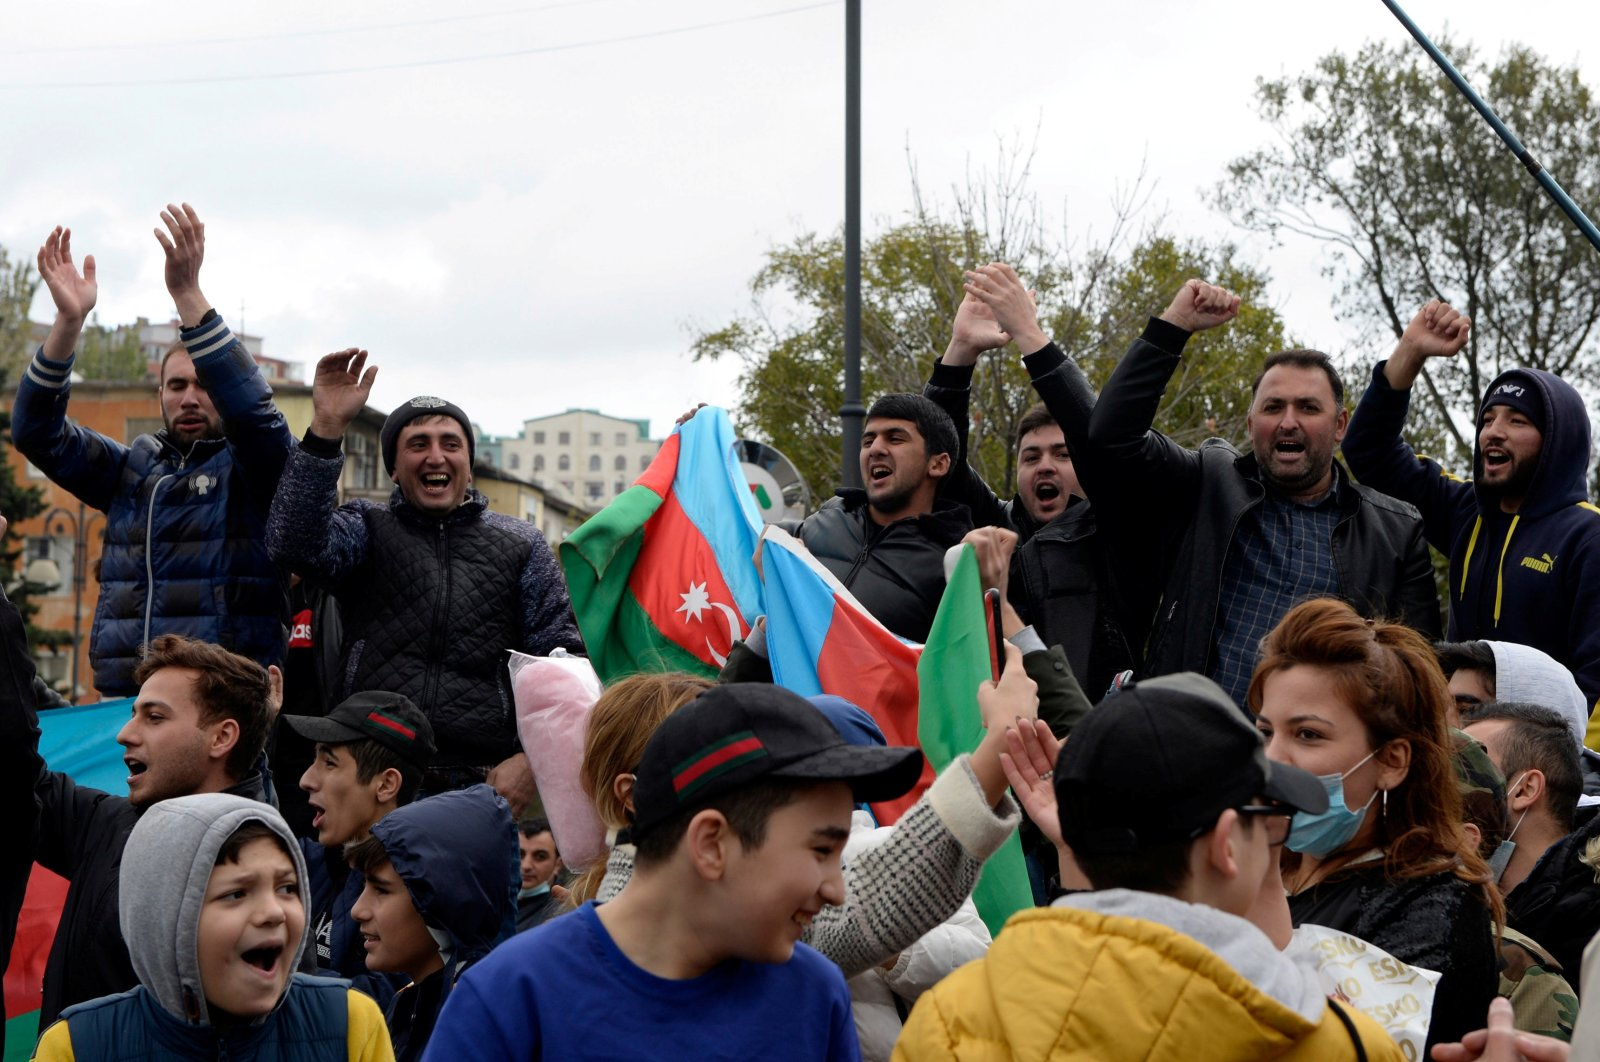 People celebrate on the streets after Azerbaijani President Ilham Aliyev said the country's forces had taken Shusha, during the fighting over the region of Nagorno-Karabakh, in Baku, Azerbaijan, Nov. 8, 2020. (Reuters Photo)